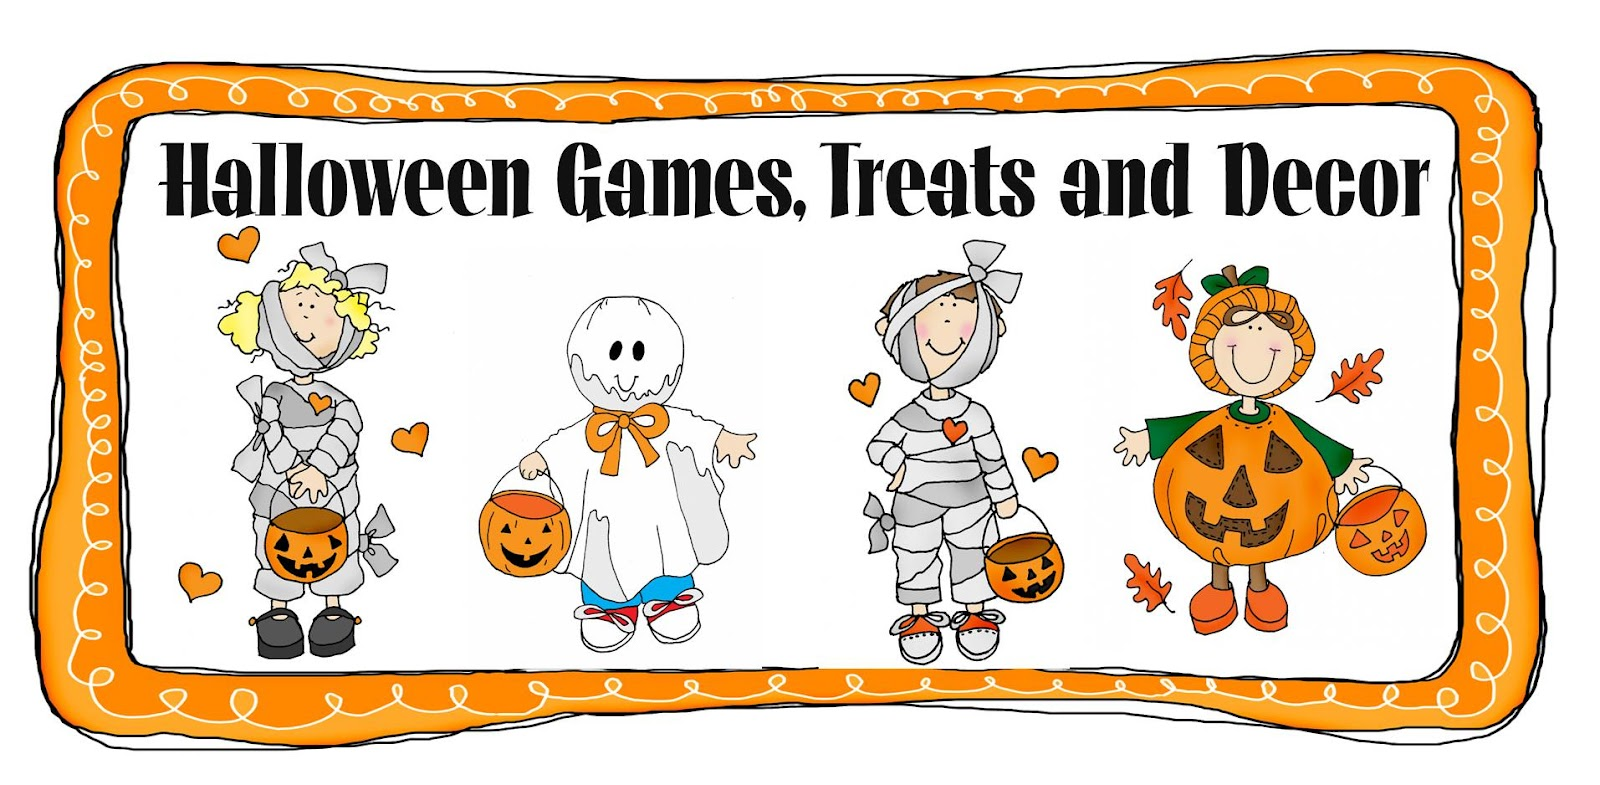 fun halloween games and decorations inside and outside pin the eye on the monster and more - Halloween Outside Games